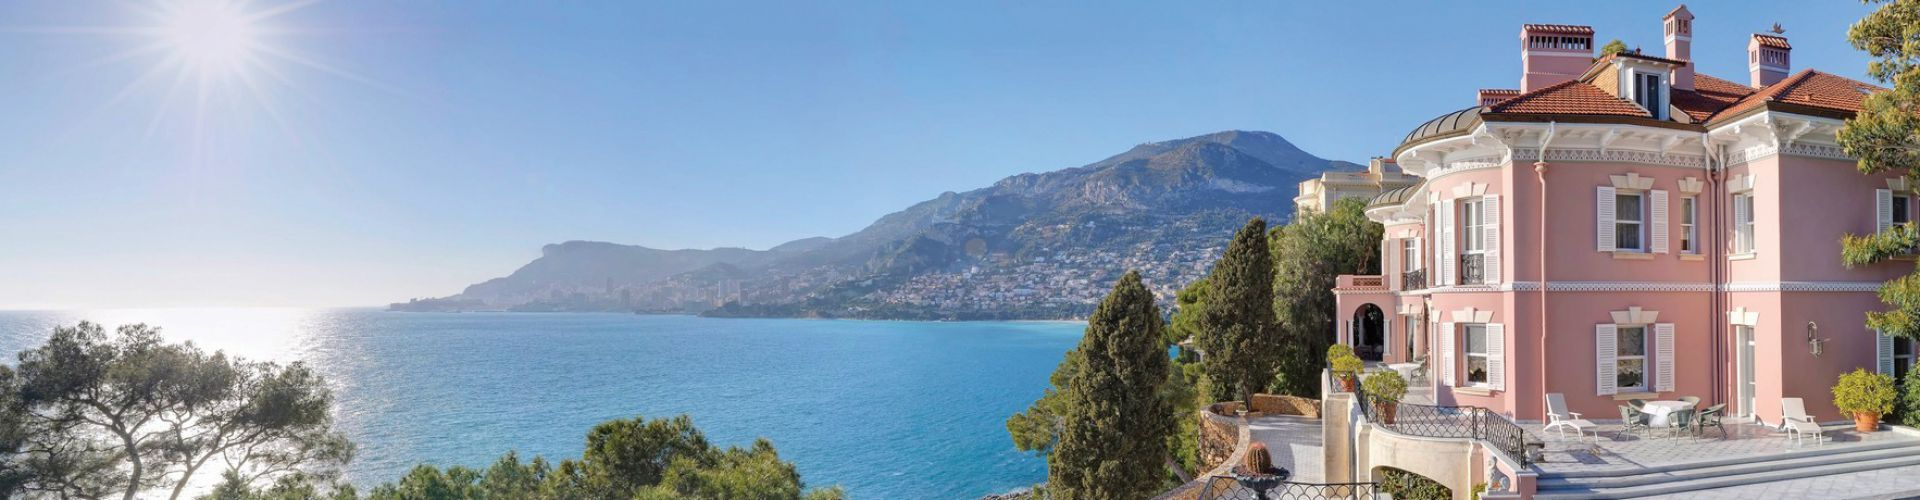 Panoramic sea views, Belle Epoque properties, French Riviera, Côte d'Azur Sotheby's International Realty